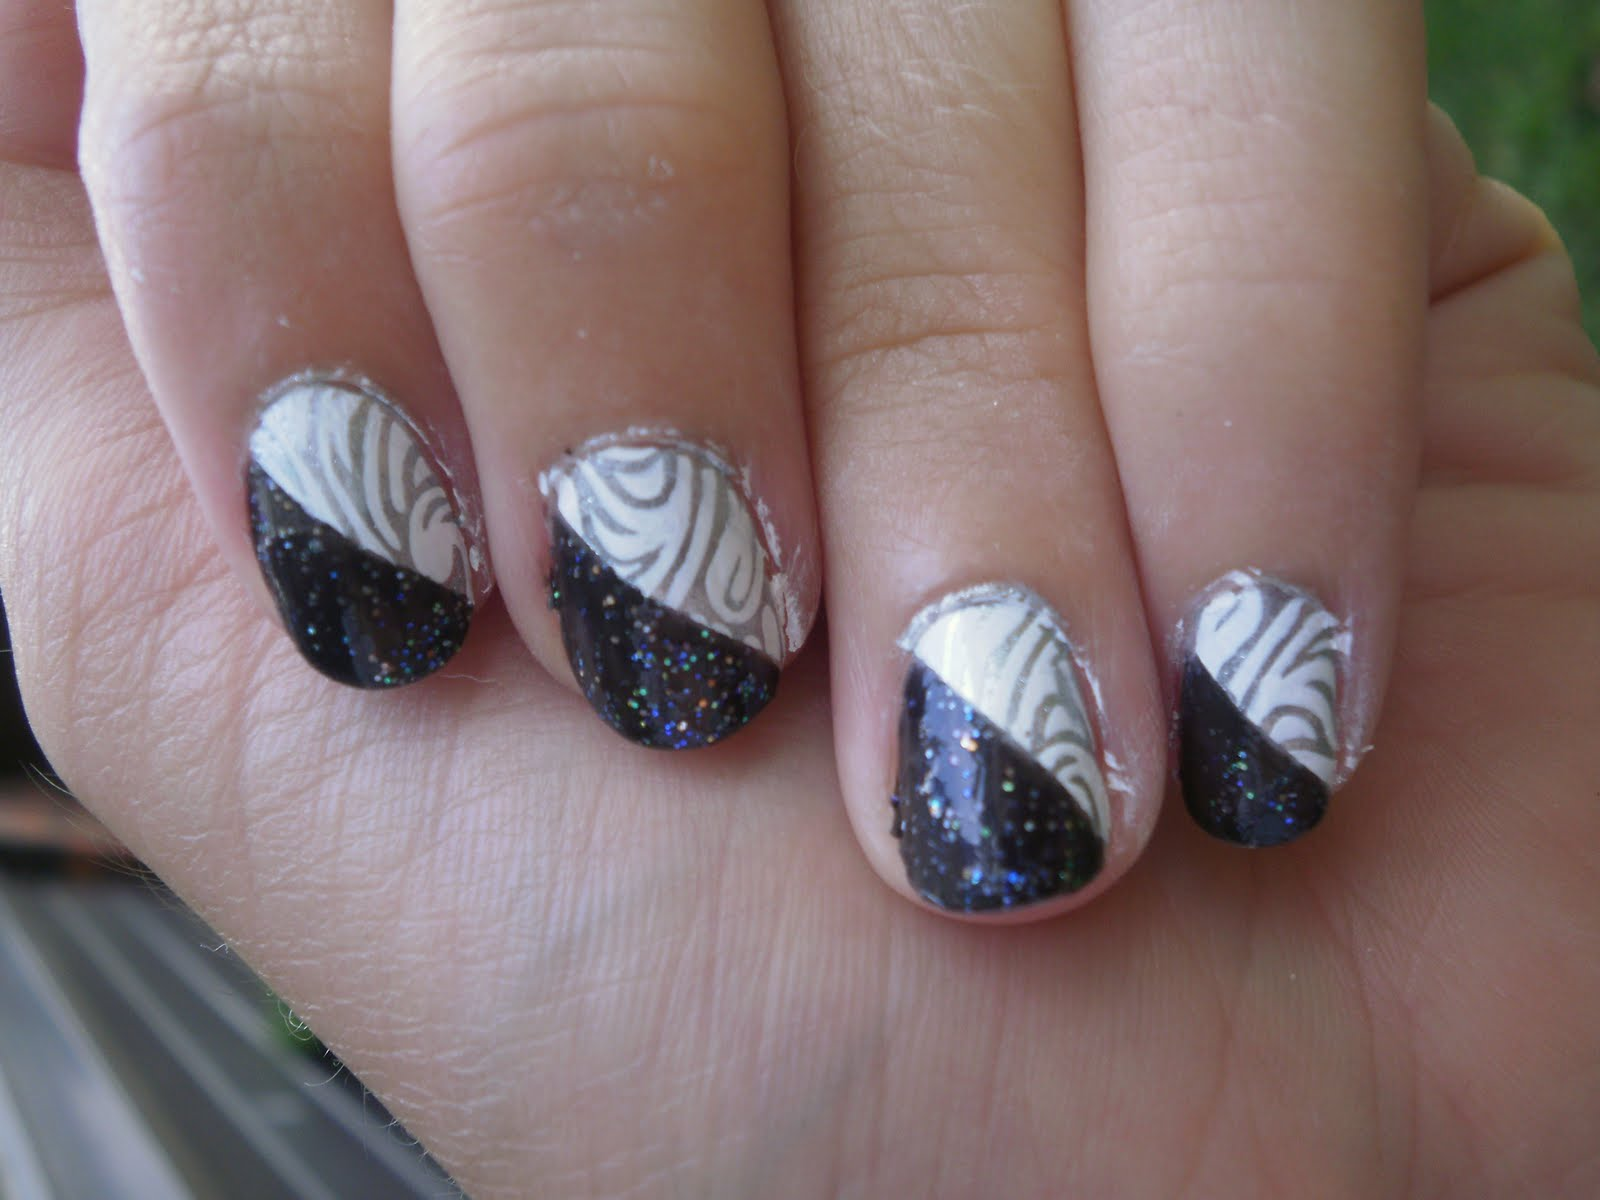 Nail Designs On White Nails Nail Art Designs